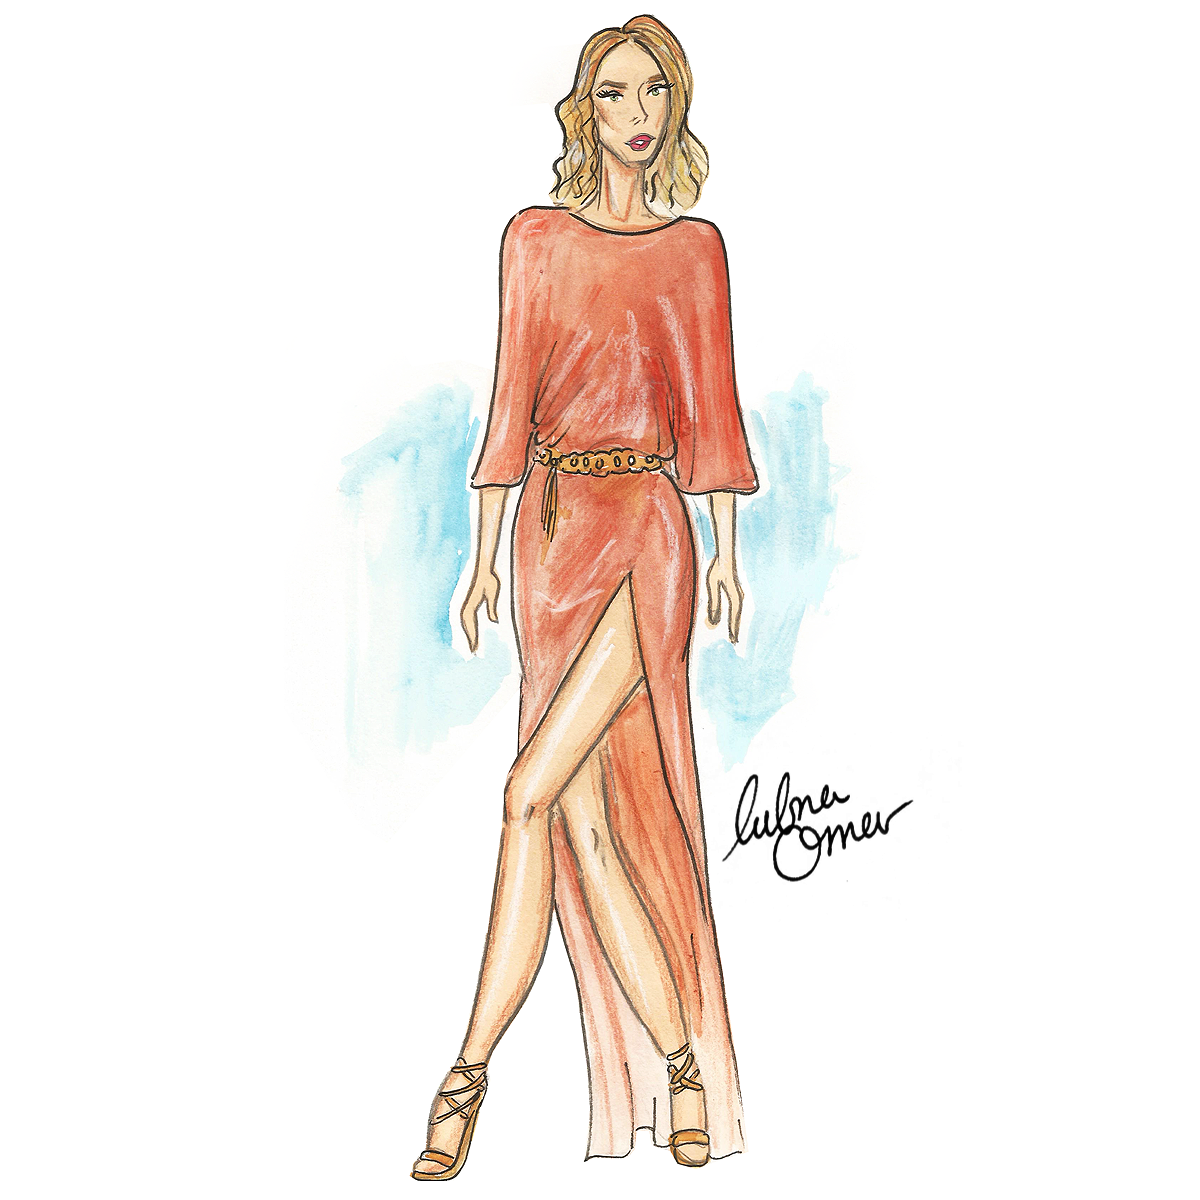 Rosie Huntington-Whiteley in Cushnie Et Ochs illustration by Lubna Omar